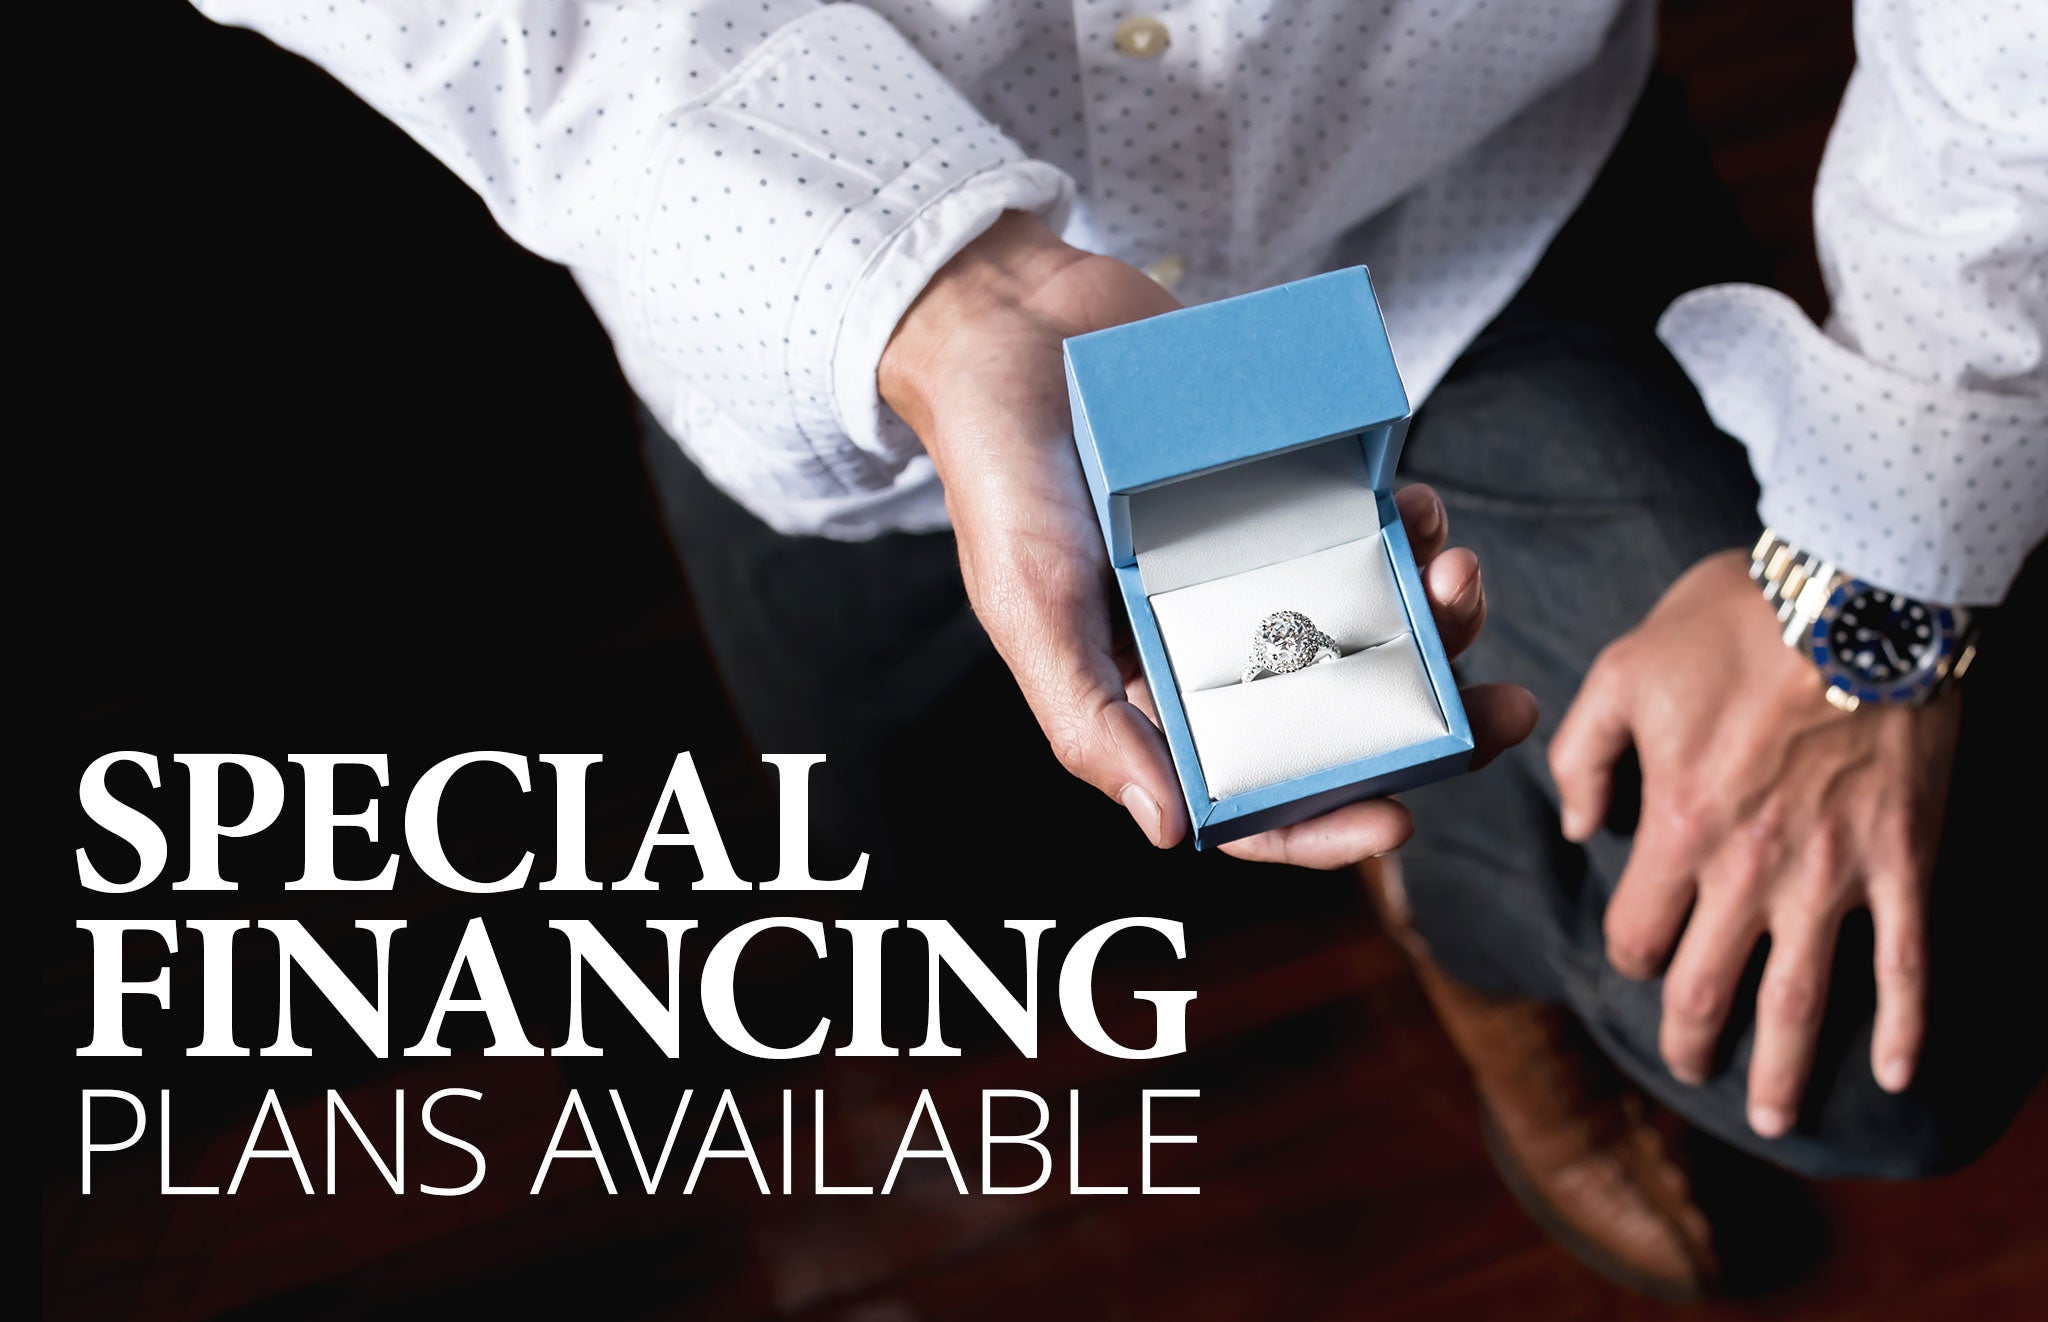 Special Financing Plans Available